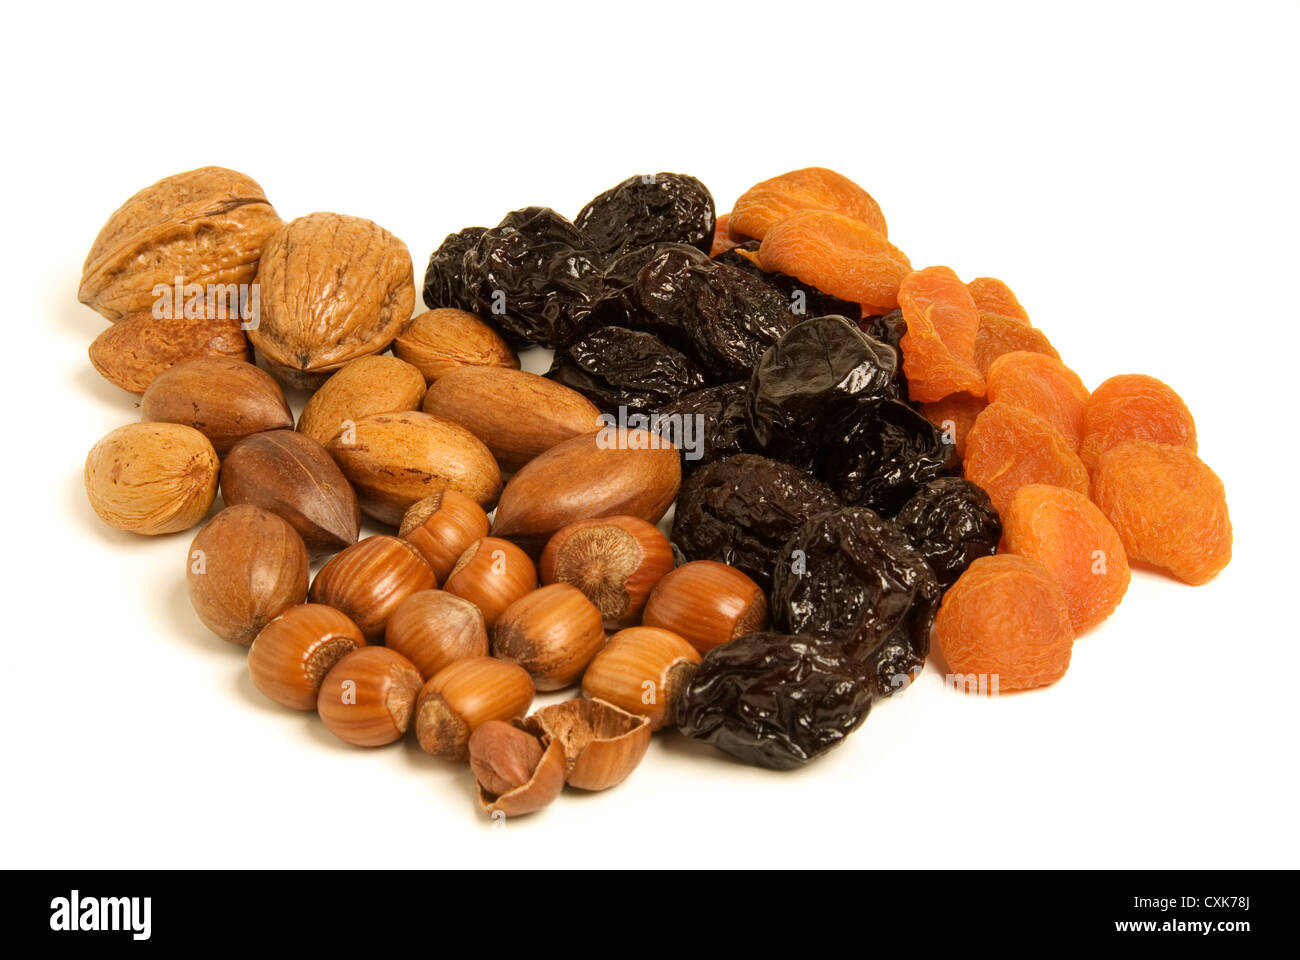 Dried fruit and nuts - Prunes, Apricots, Hazelnuts, pecans and walnuts isolated. - Stock Image